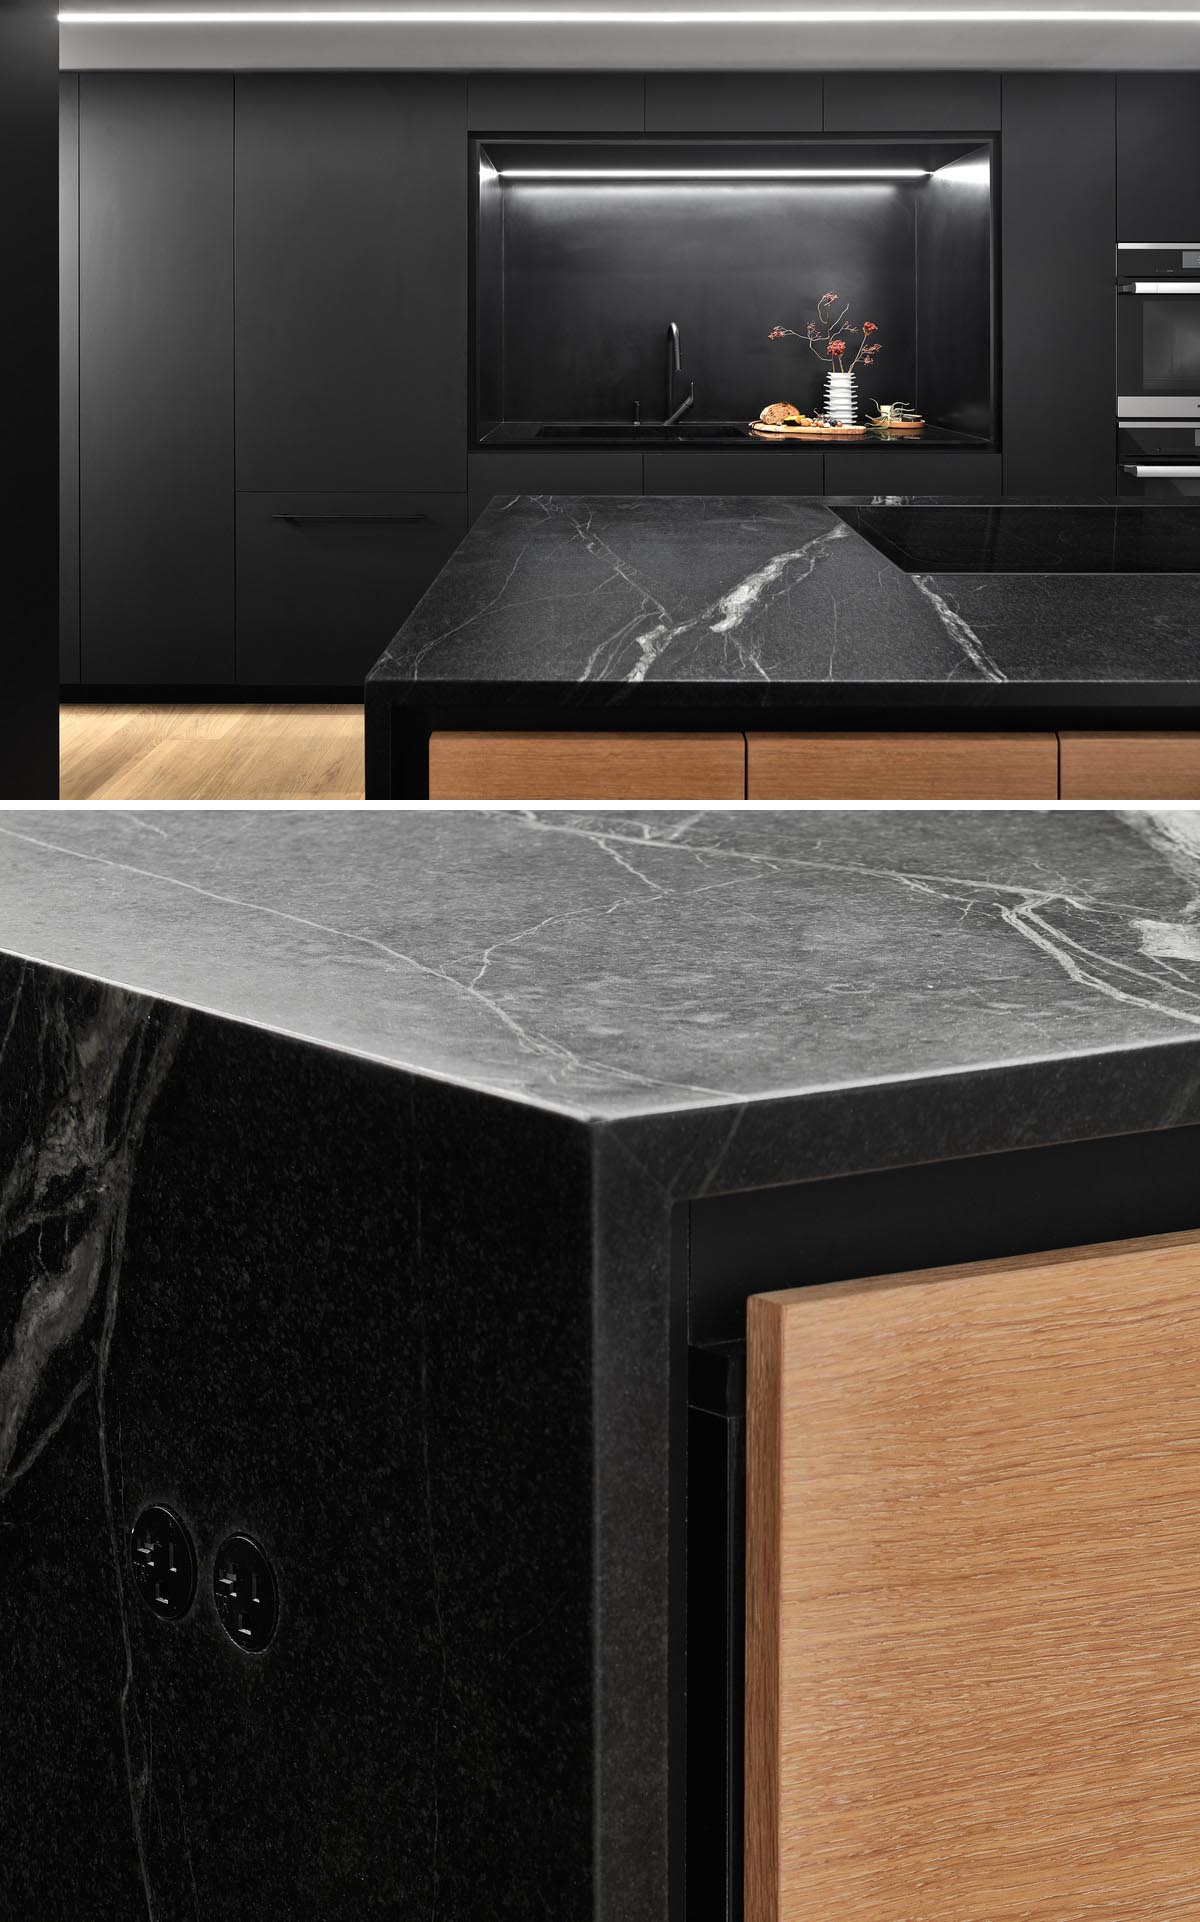 Design firm Creative Union Network completed the renovation of a loft apartment and included a black kitchen.